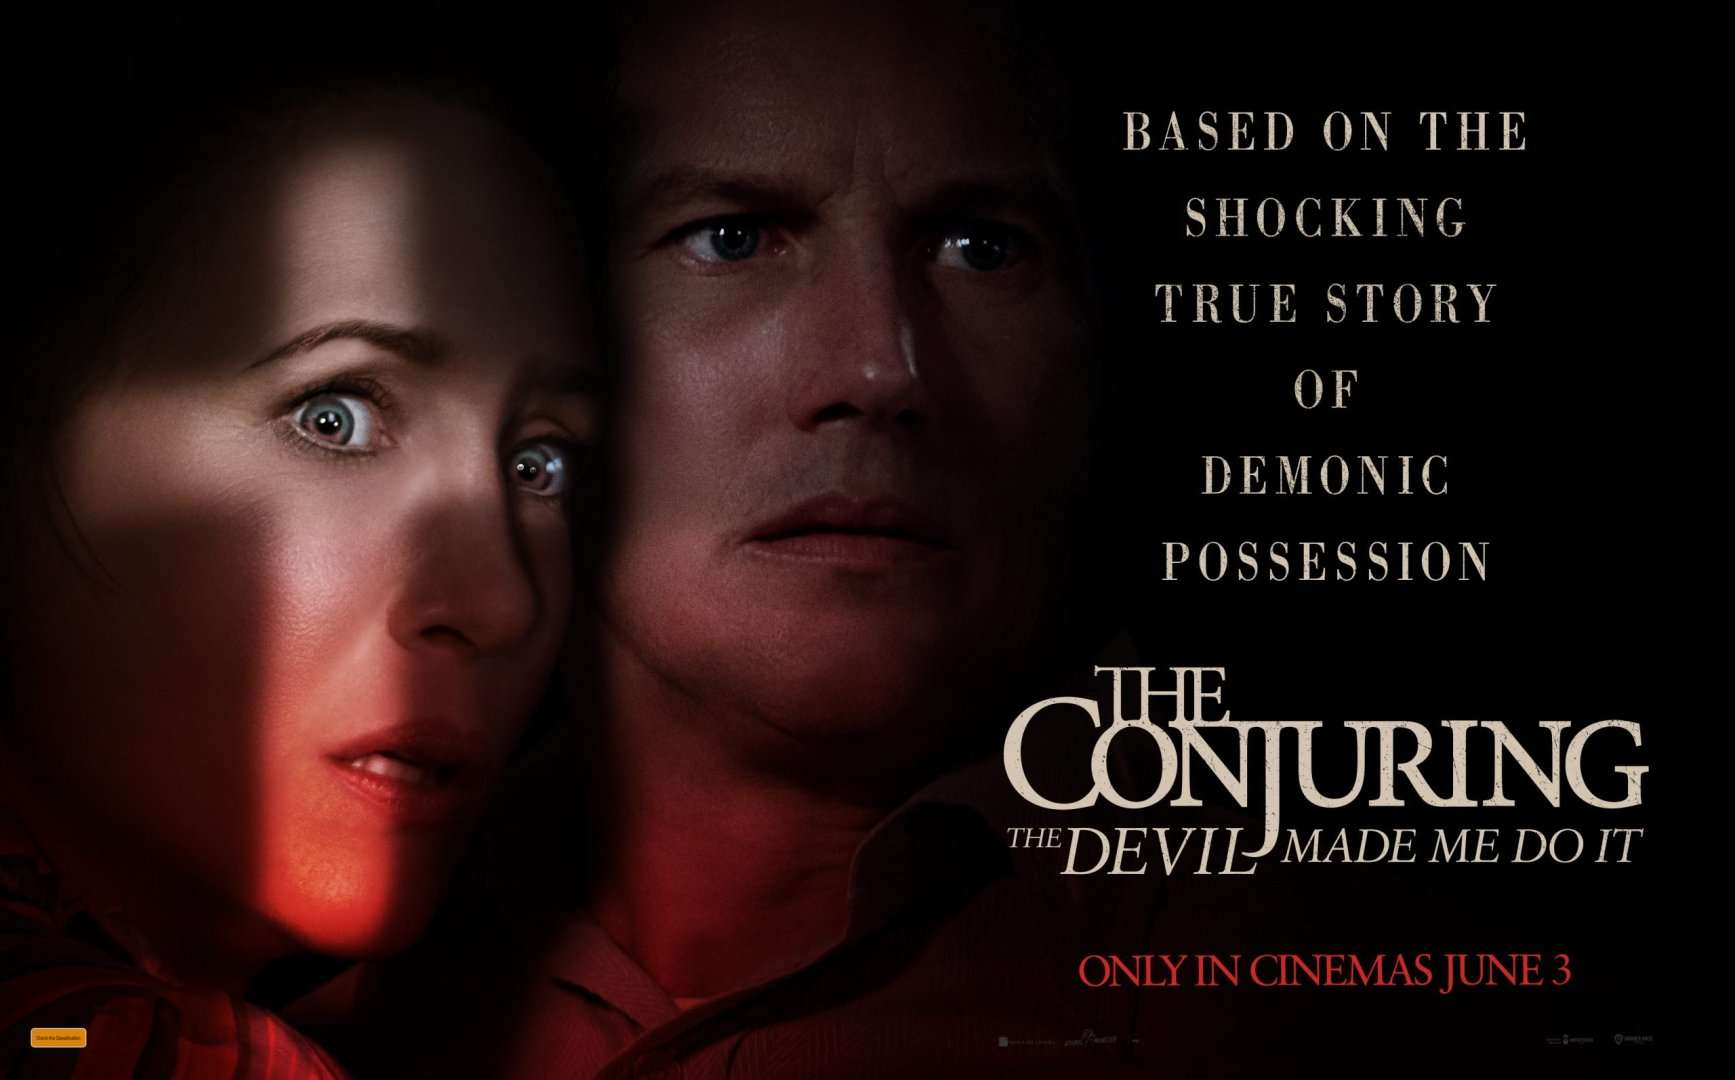 The-Conjuring-The-Devil-Made-Me-Do-It-Feature